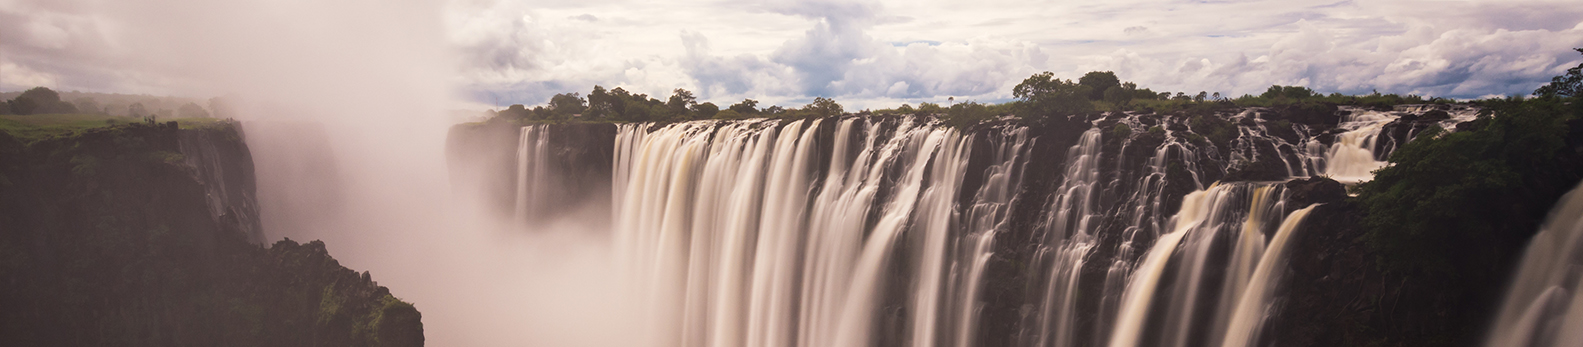 Victoria Falls, Zimbabwe is not only thrilling and mind blowing but offer amazing views of the Zambezi River.